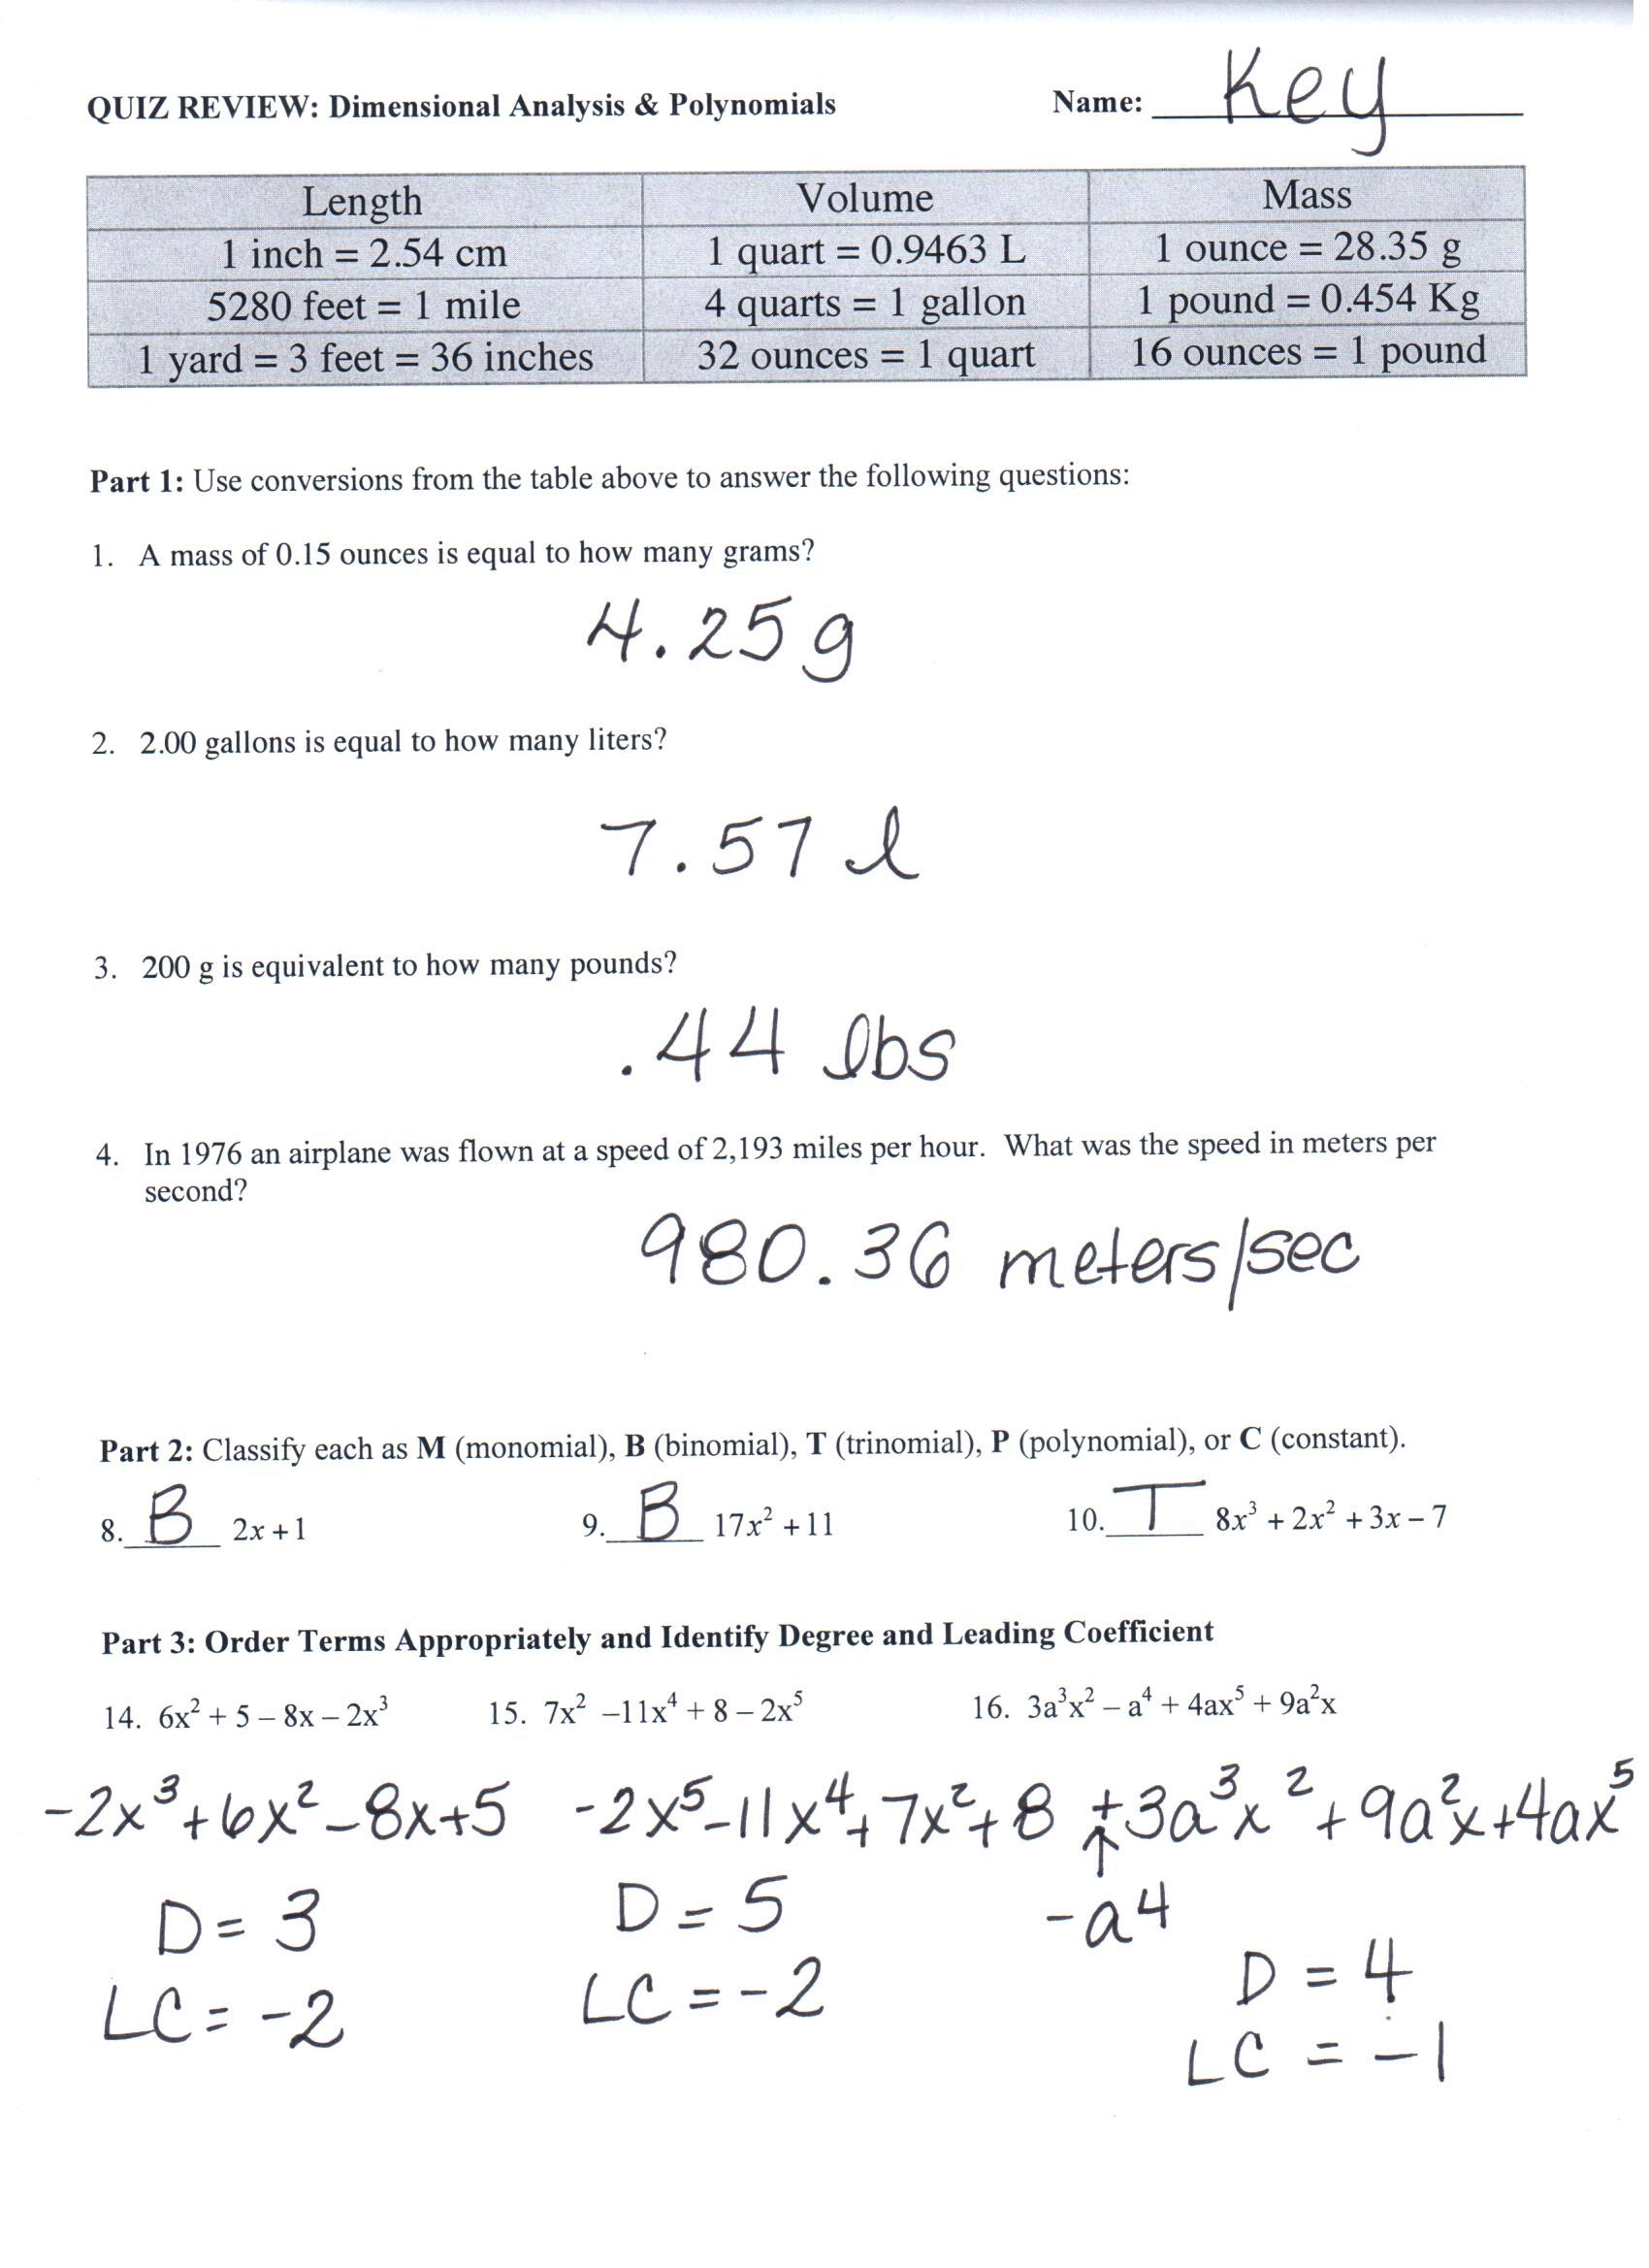 Pre ap chemistry dimensional analysis worksheet 2